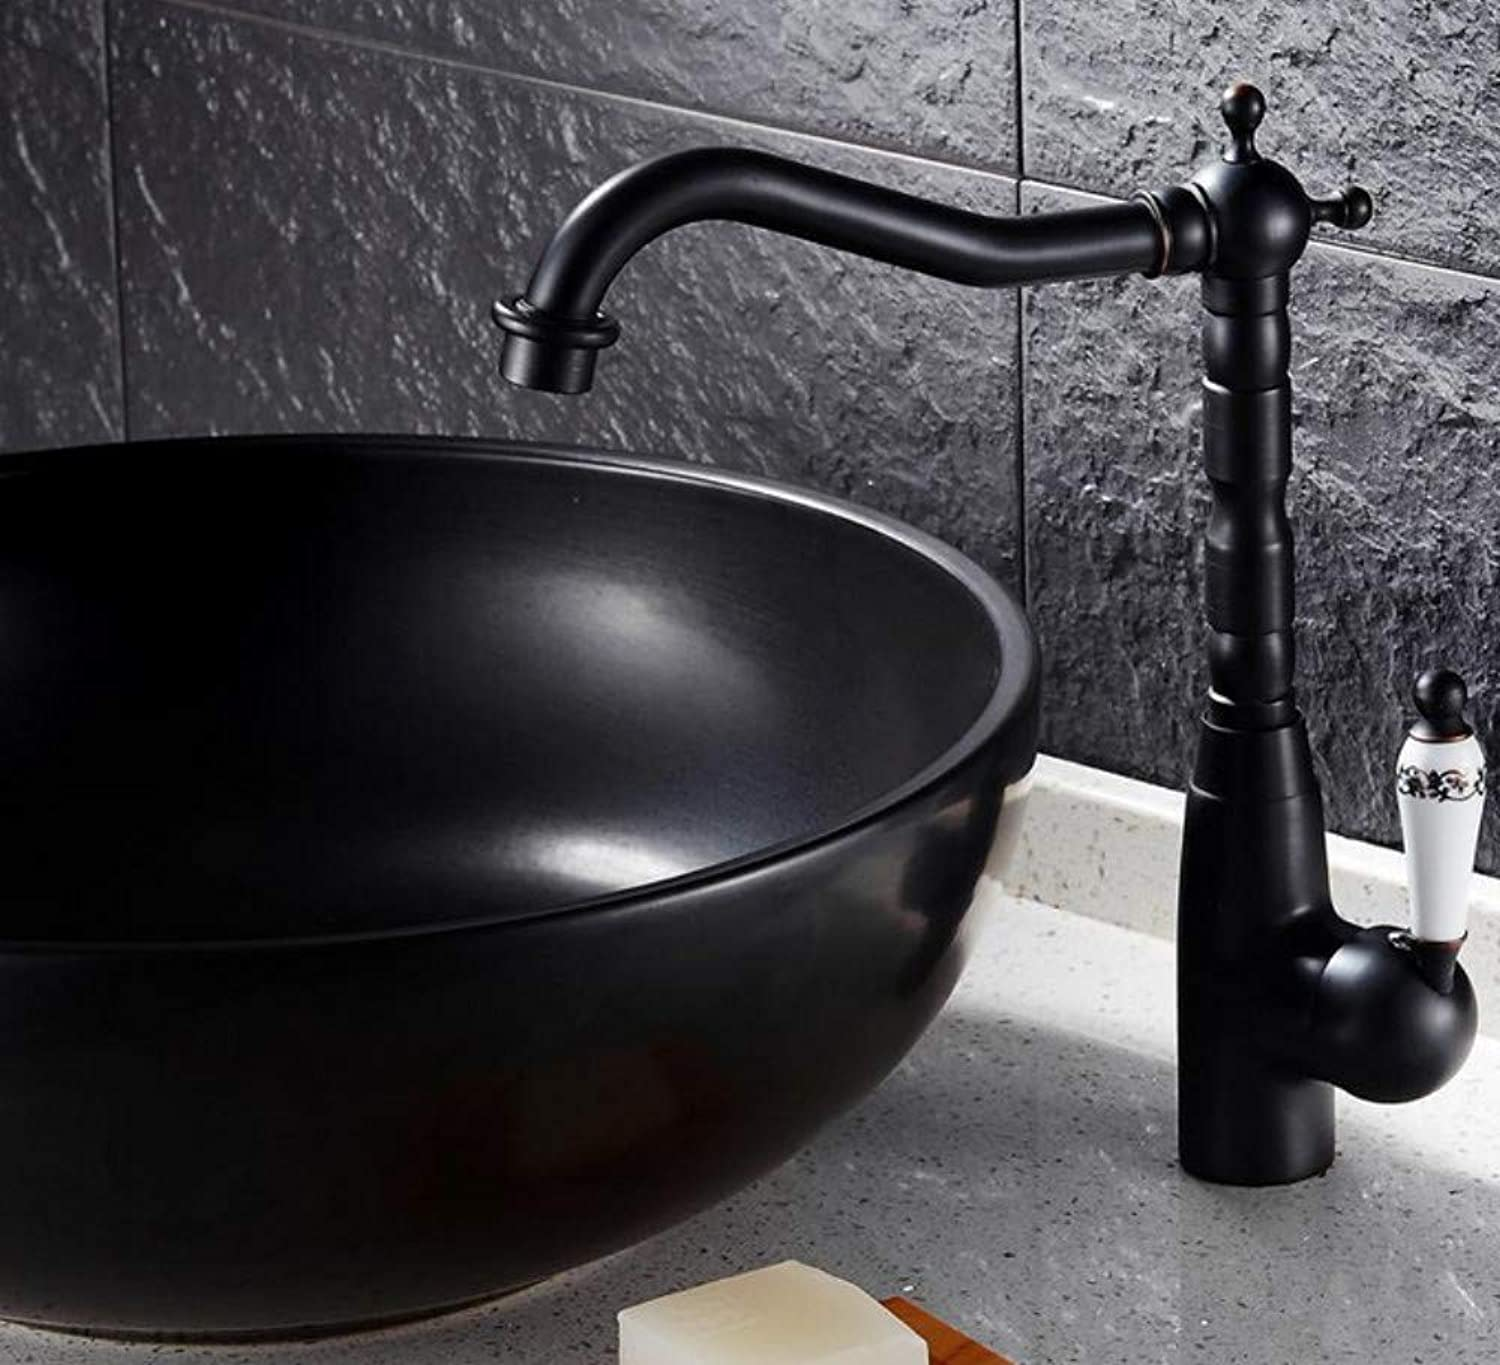 redOOY Black Finish Basin Faucet Bathroom Luxury&Elegant Mixer Taps Swivel Spout with Ceramic Handle water tap for basin